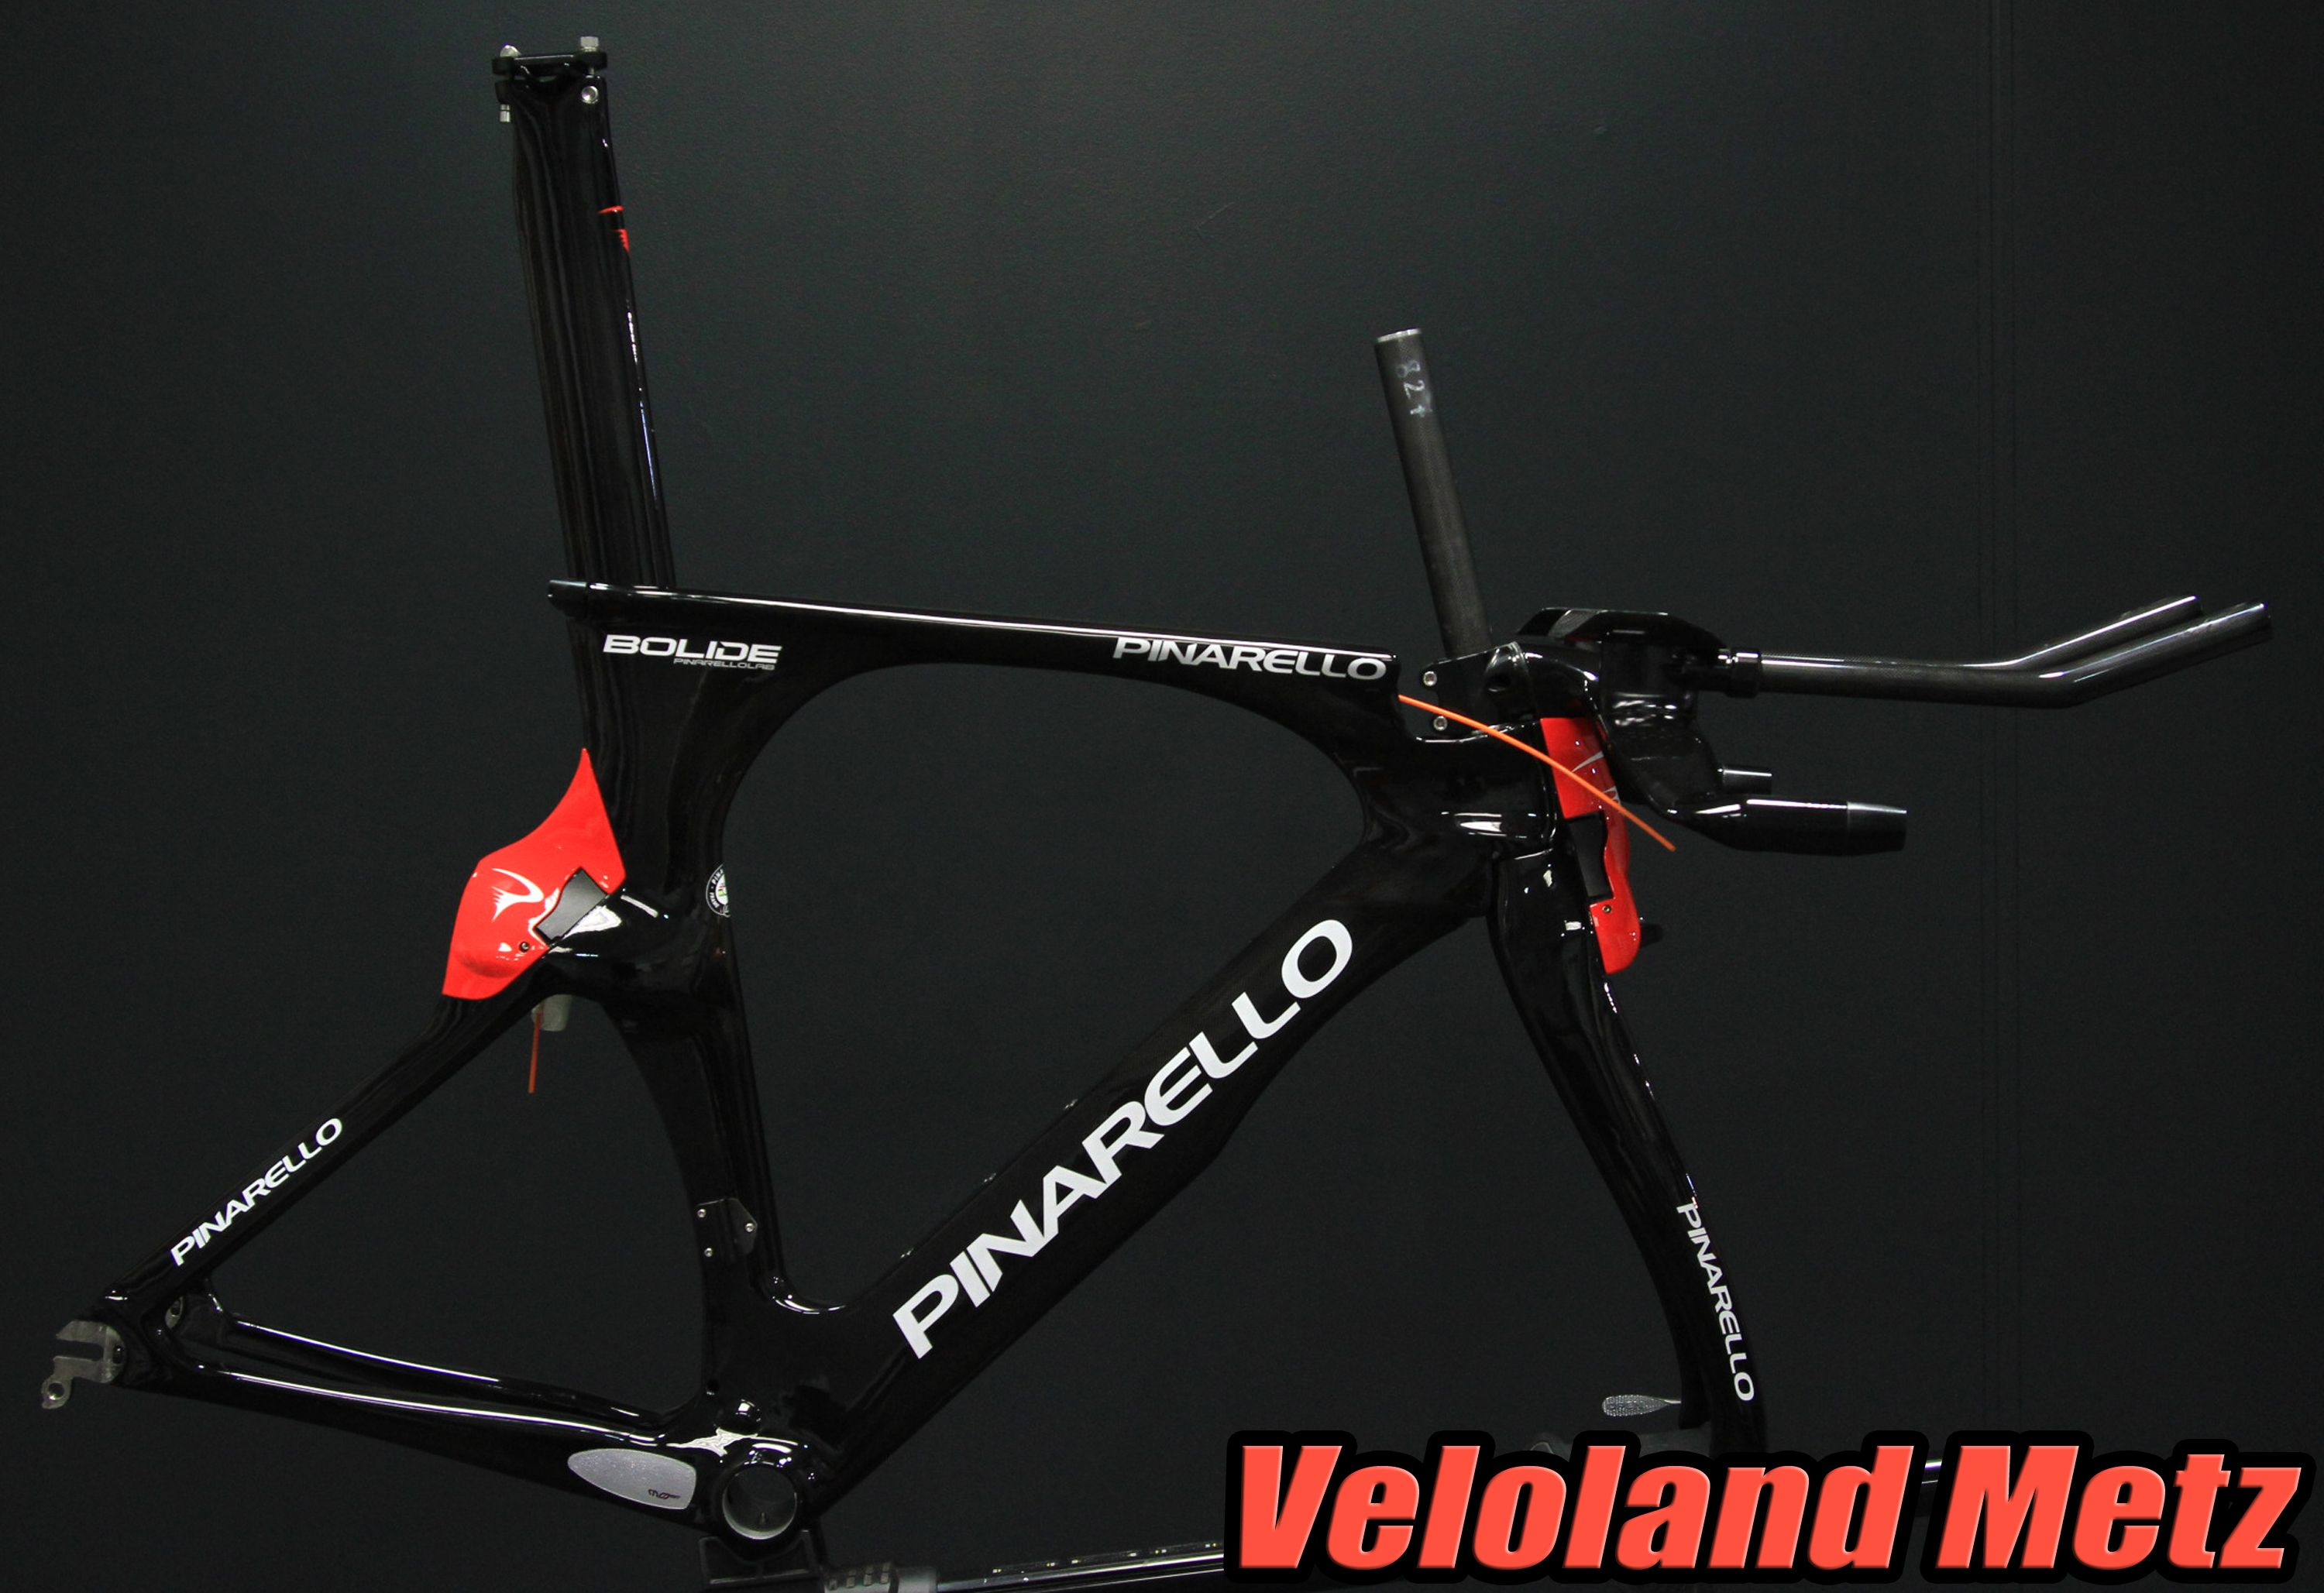 Pinarello Bolide, kit cadre10999€. https://www.facebook.com/pages/Veloland-Metz/169721311591